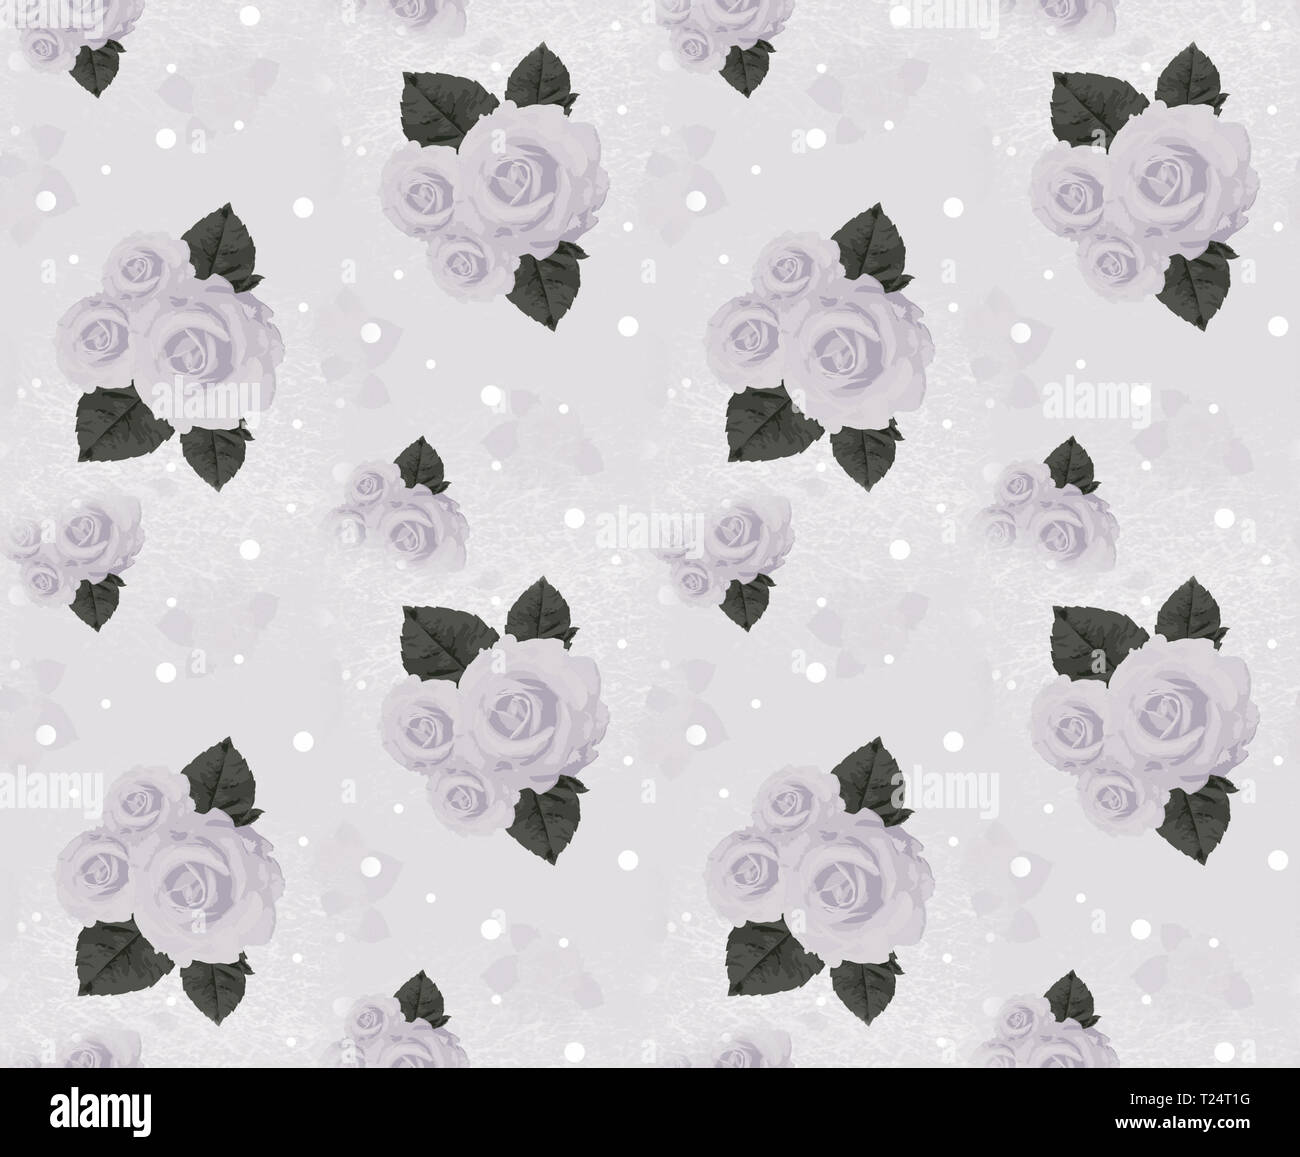 Seamless wall-paper with roses, gray. A vintage decorative pattern, a print for fabric, interior design, wedding invitation, a background. A basis for - Stock Image